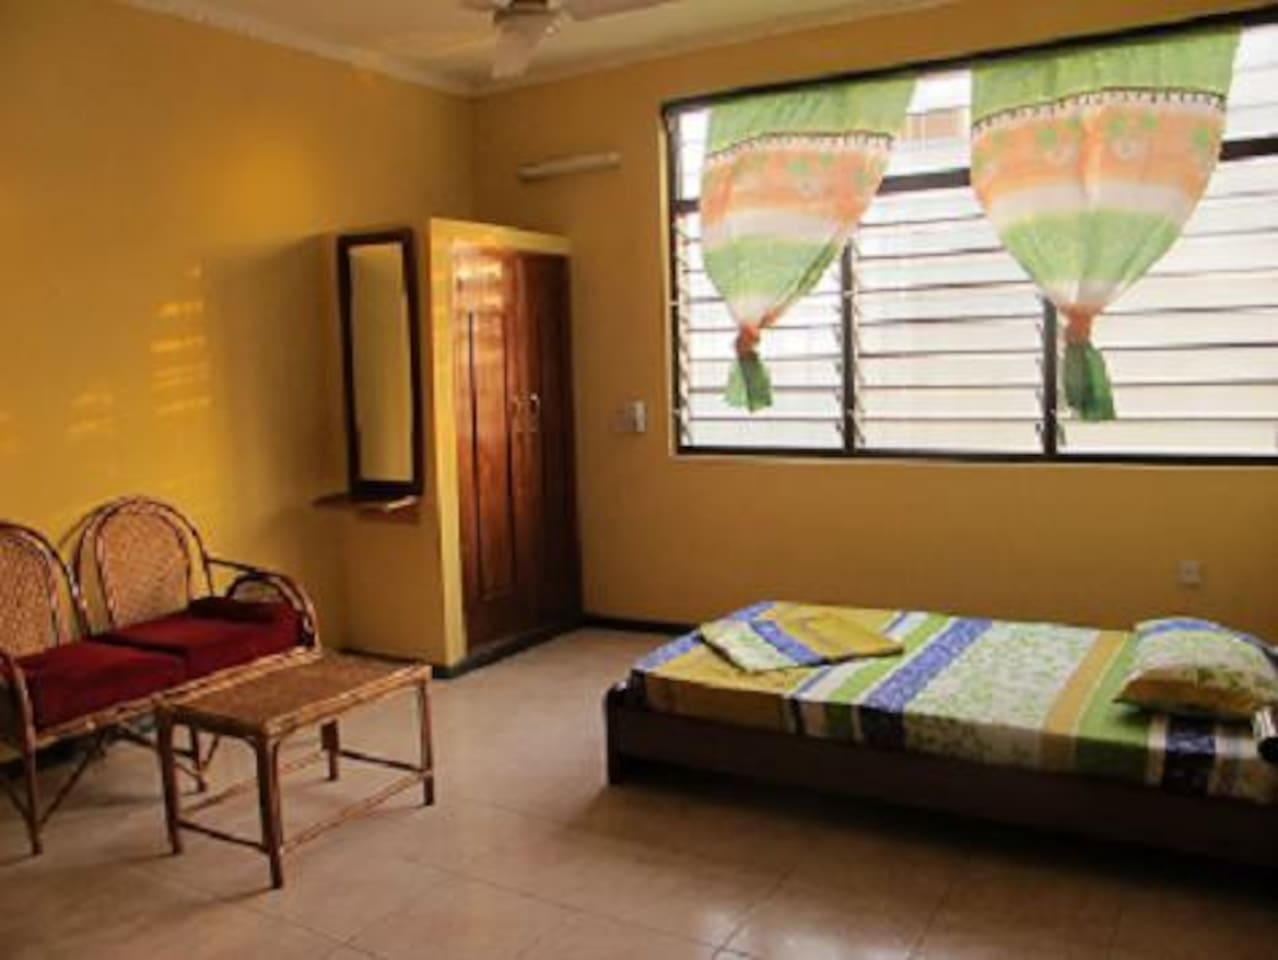 Nkwa Foundation Guest Room (single bed). We can also provide a room with two single beds or one queen size bed for couples.